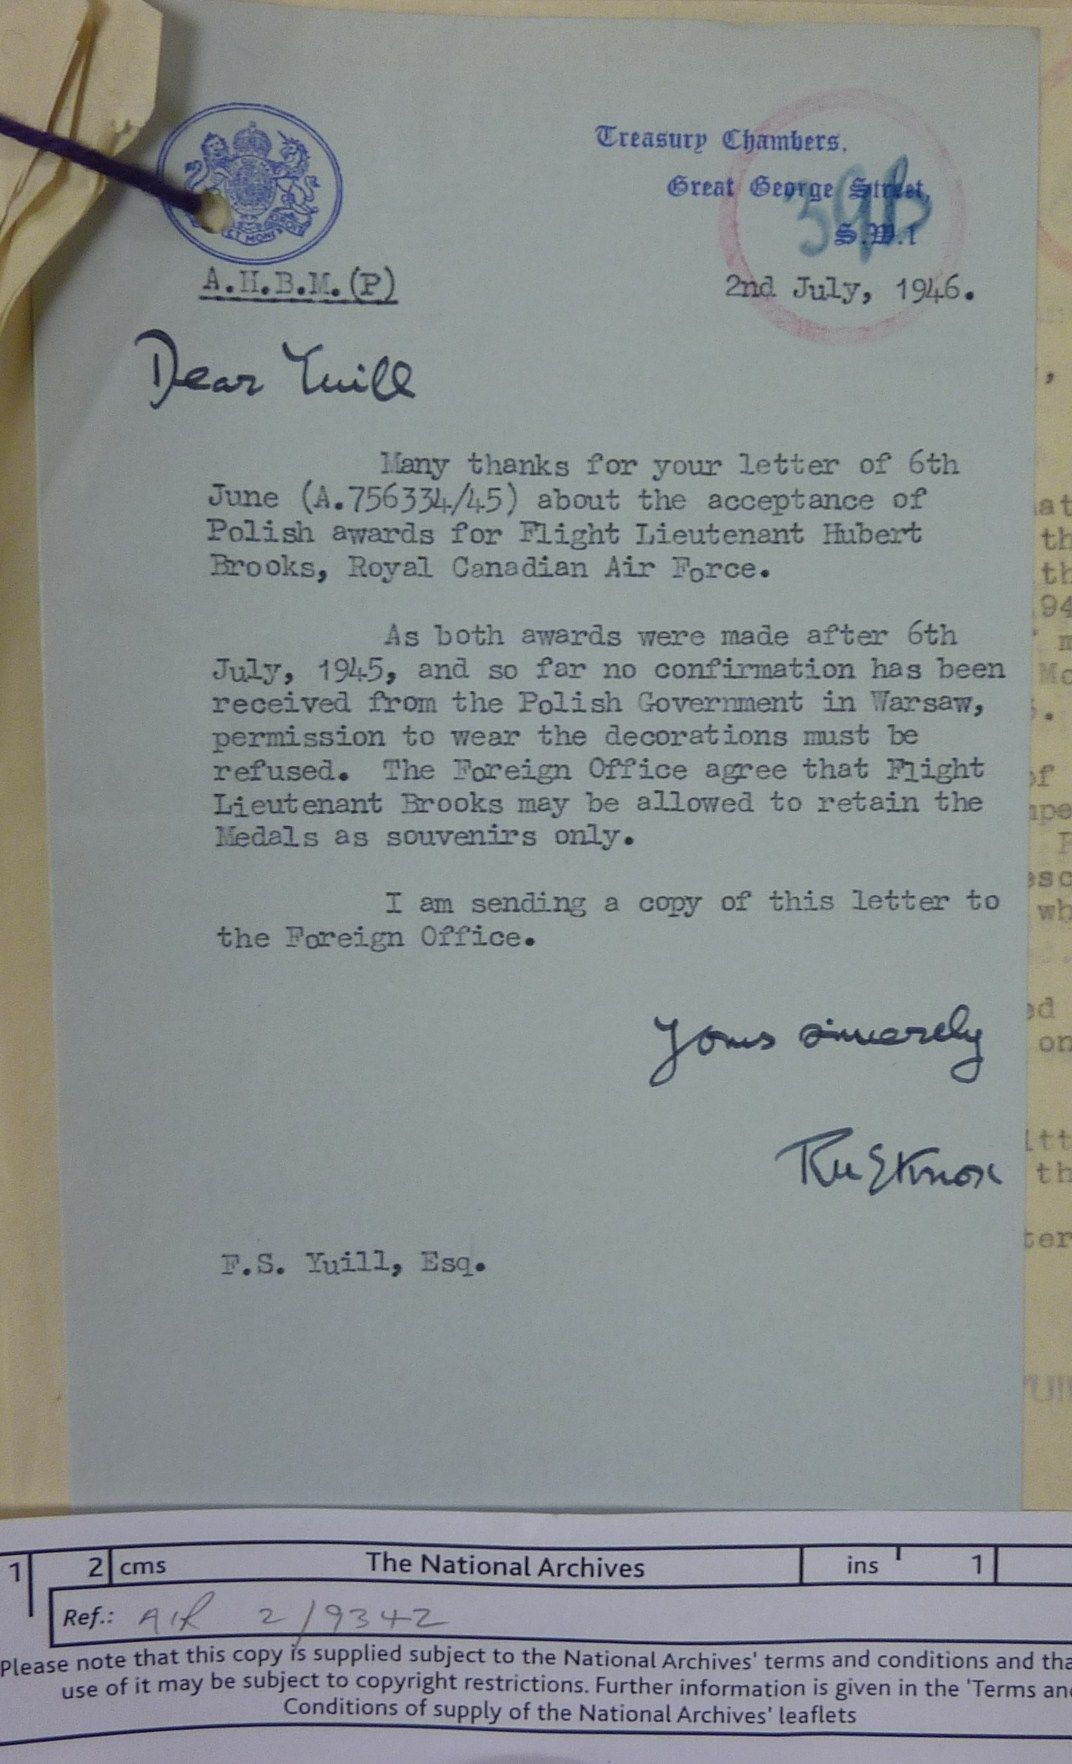 Image British Gov Ltr 1 re Hubert Brooks Award